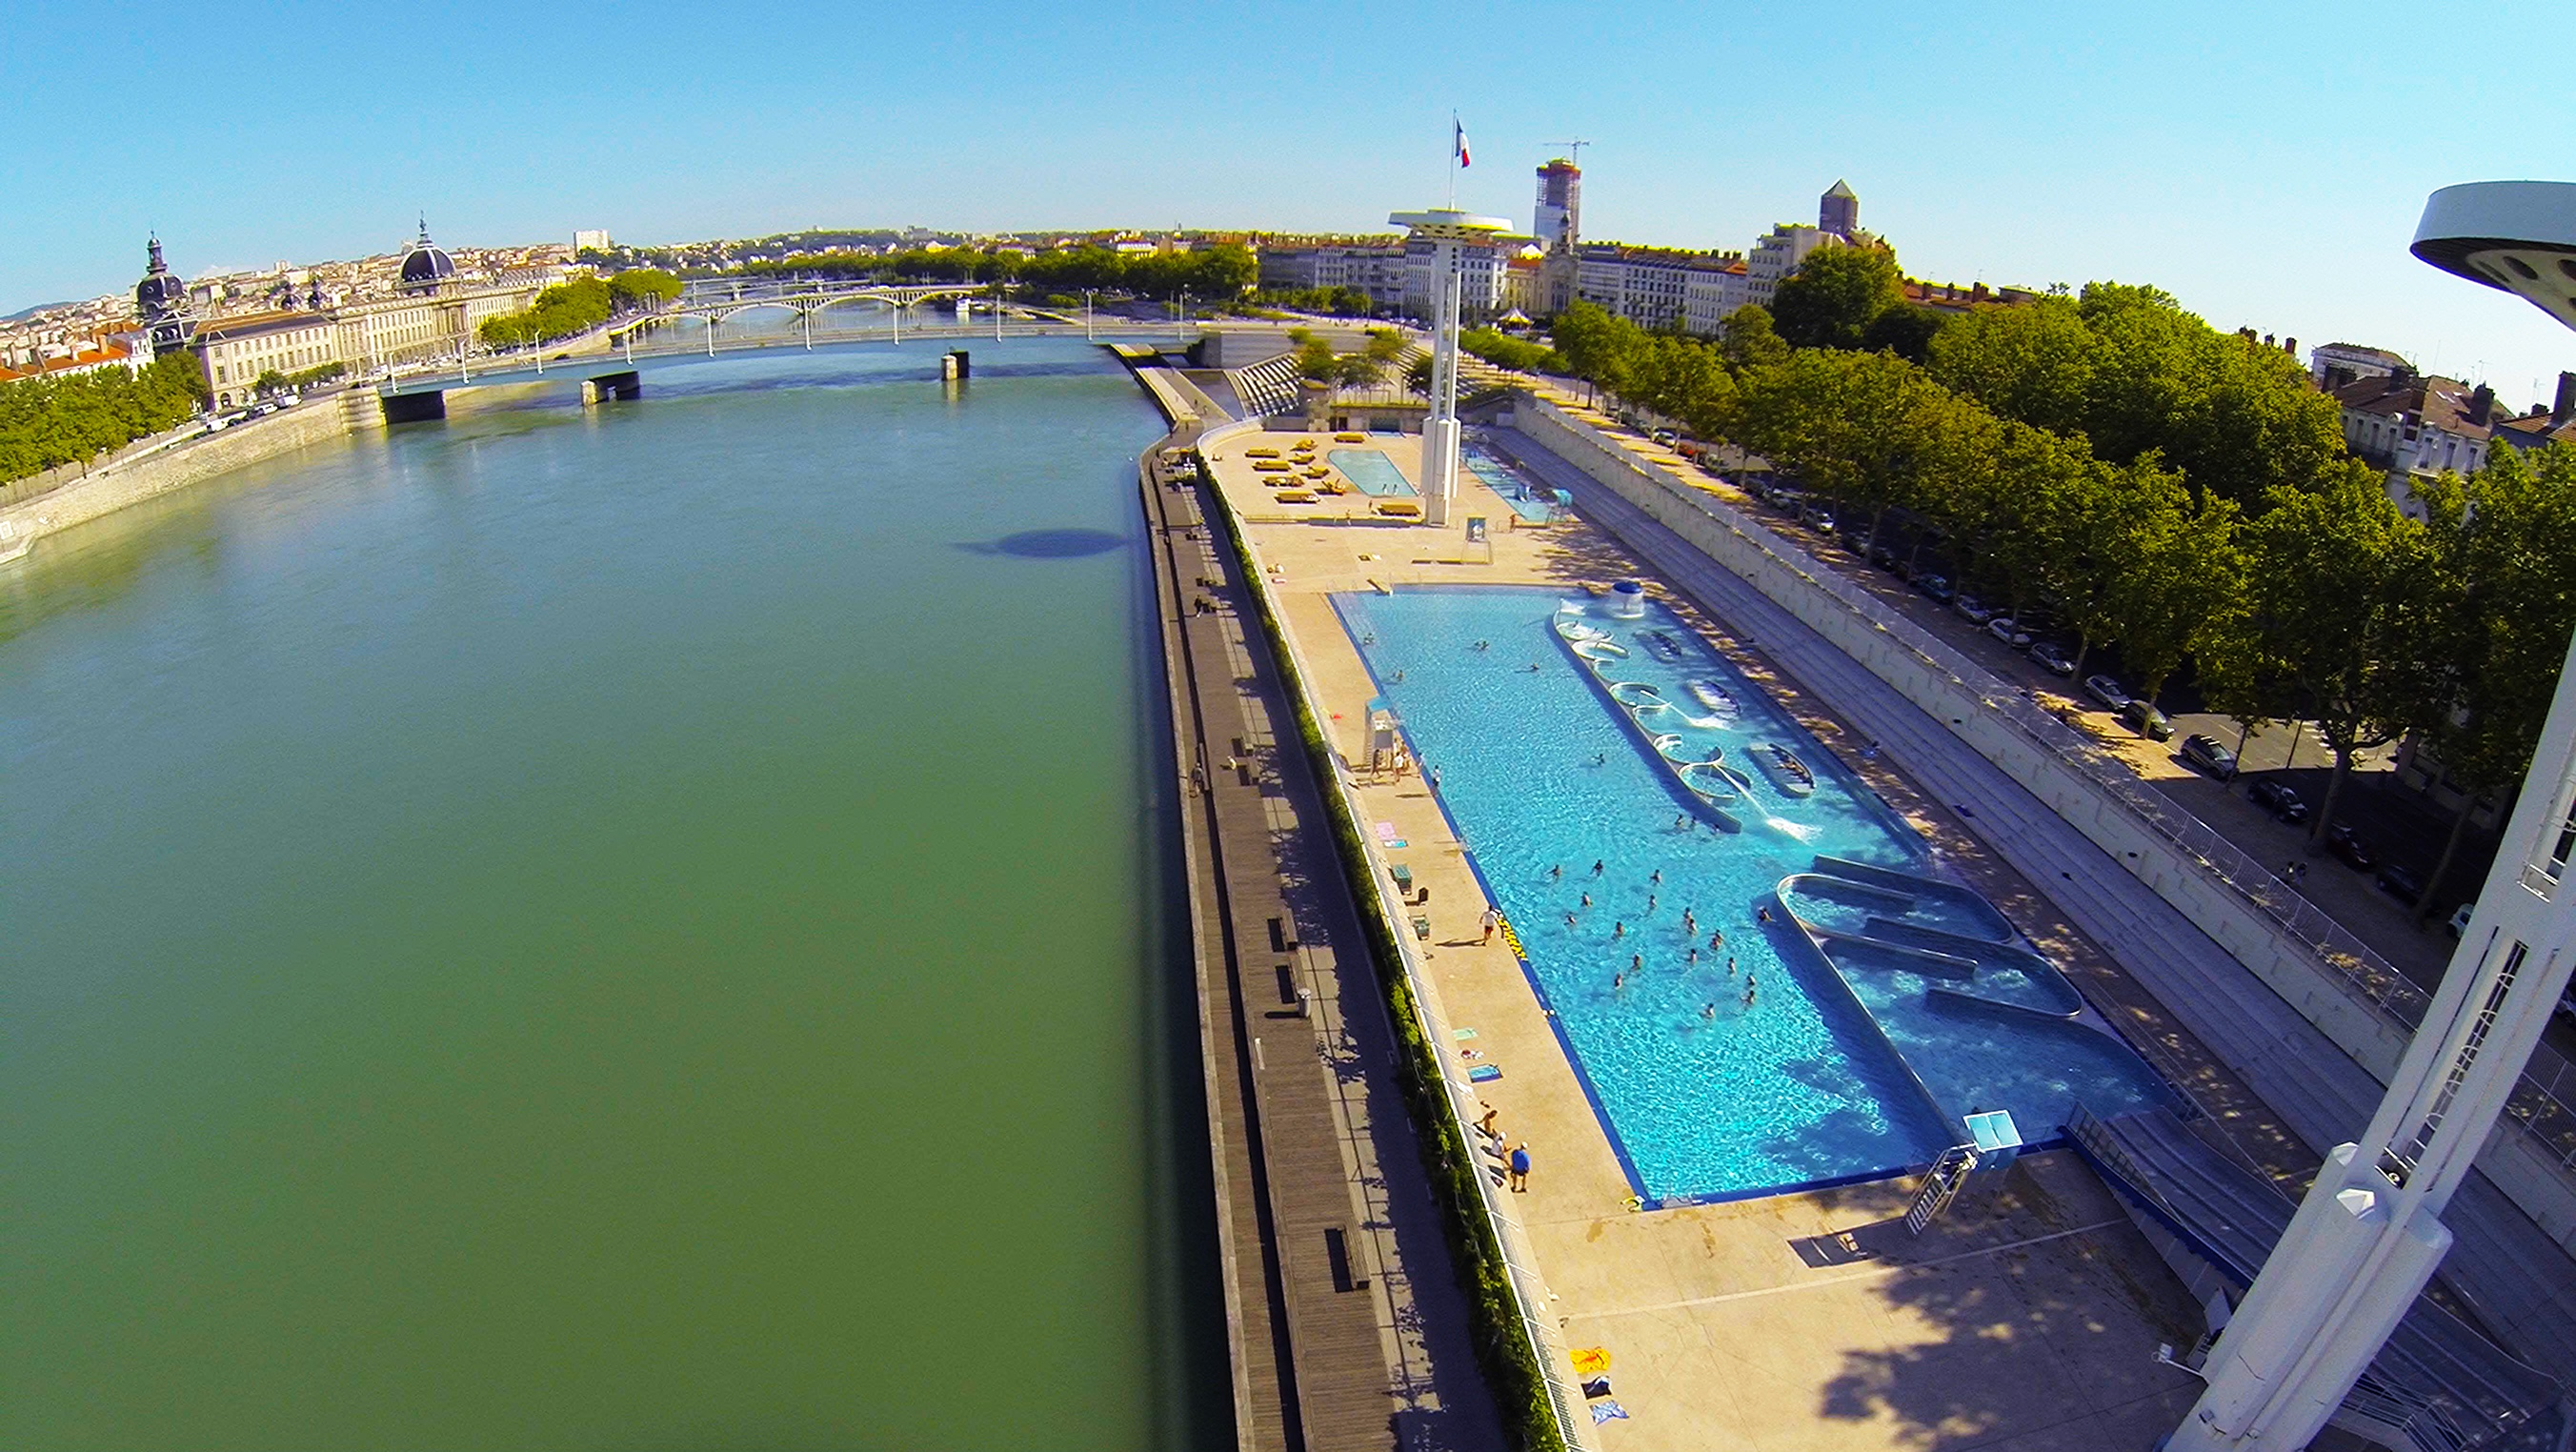 Piscine du rhone dronestagram for Piscine rhone lyon